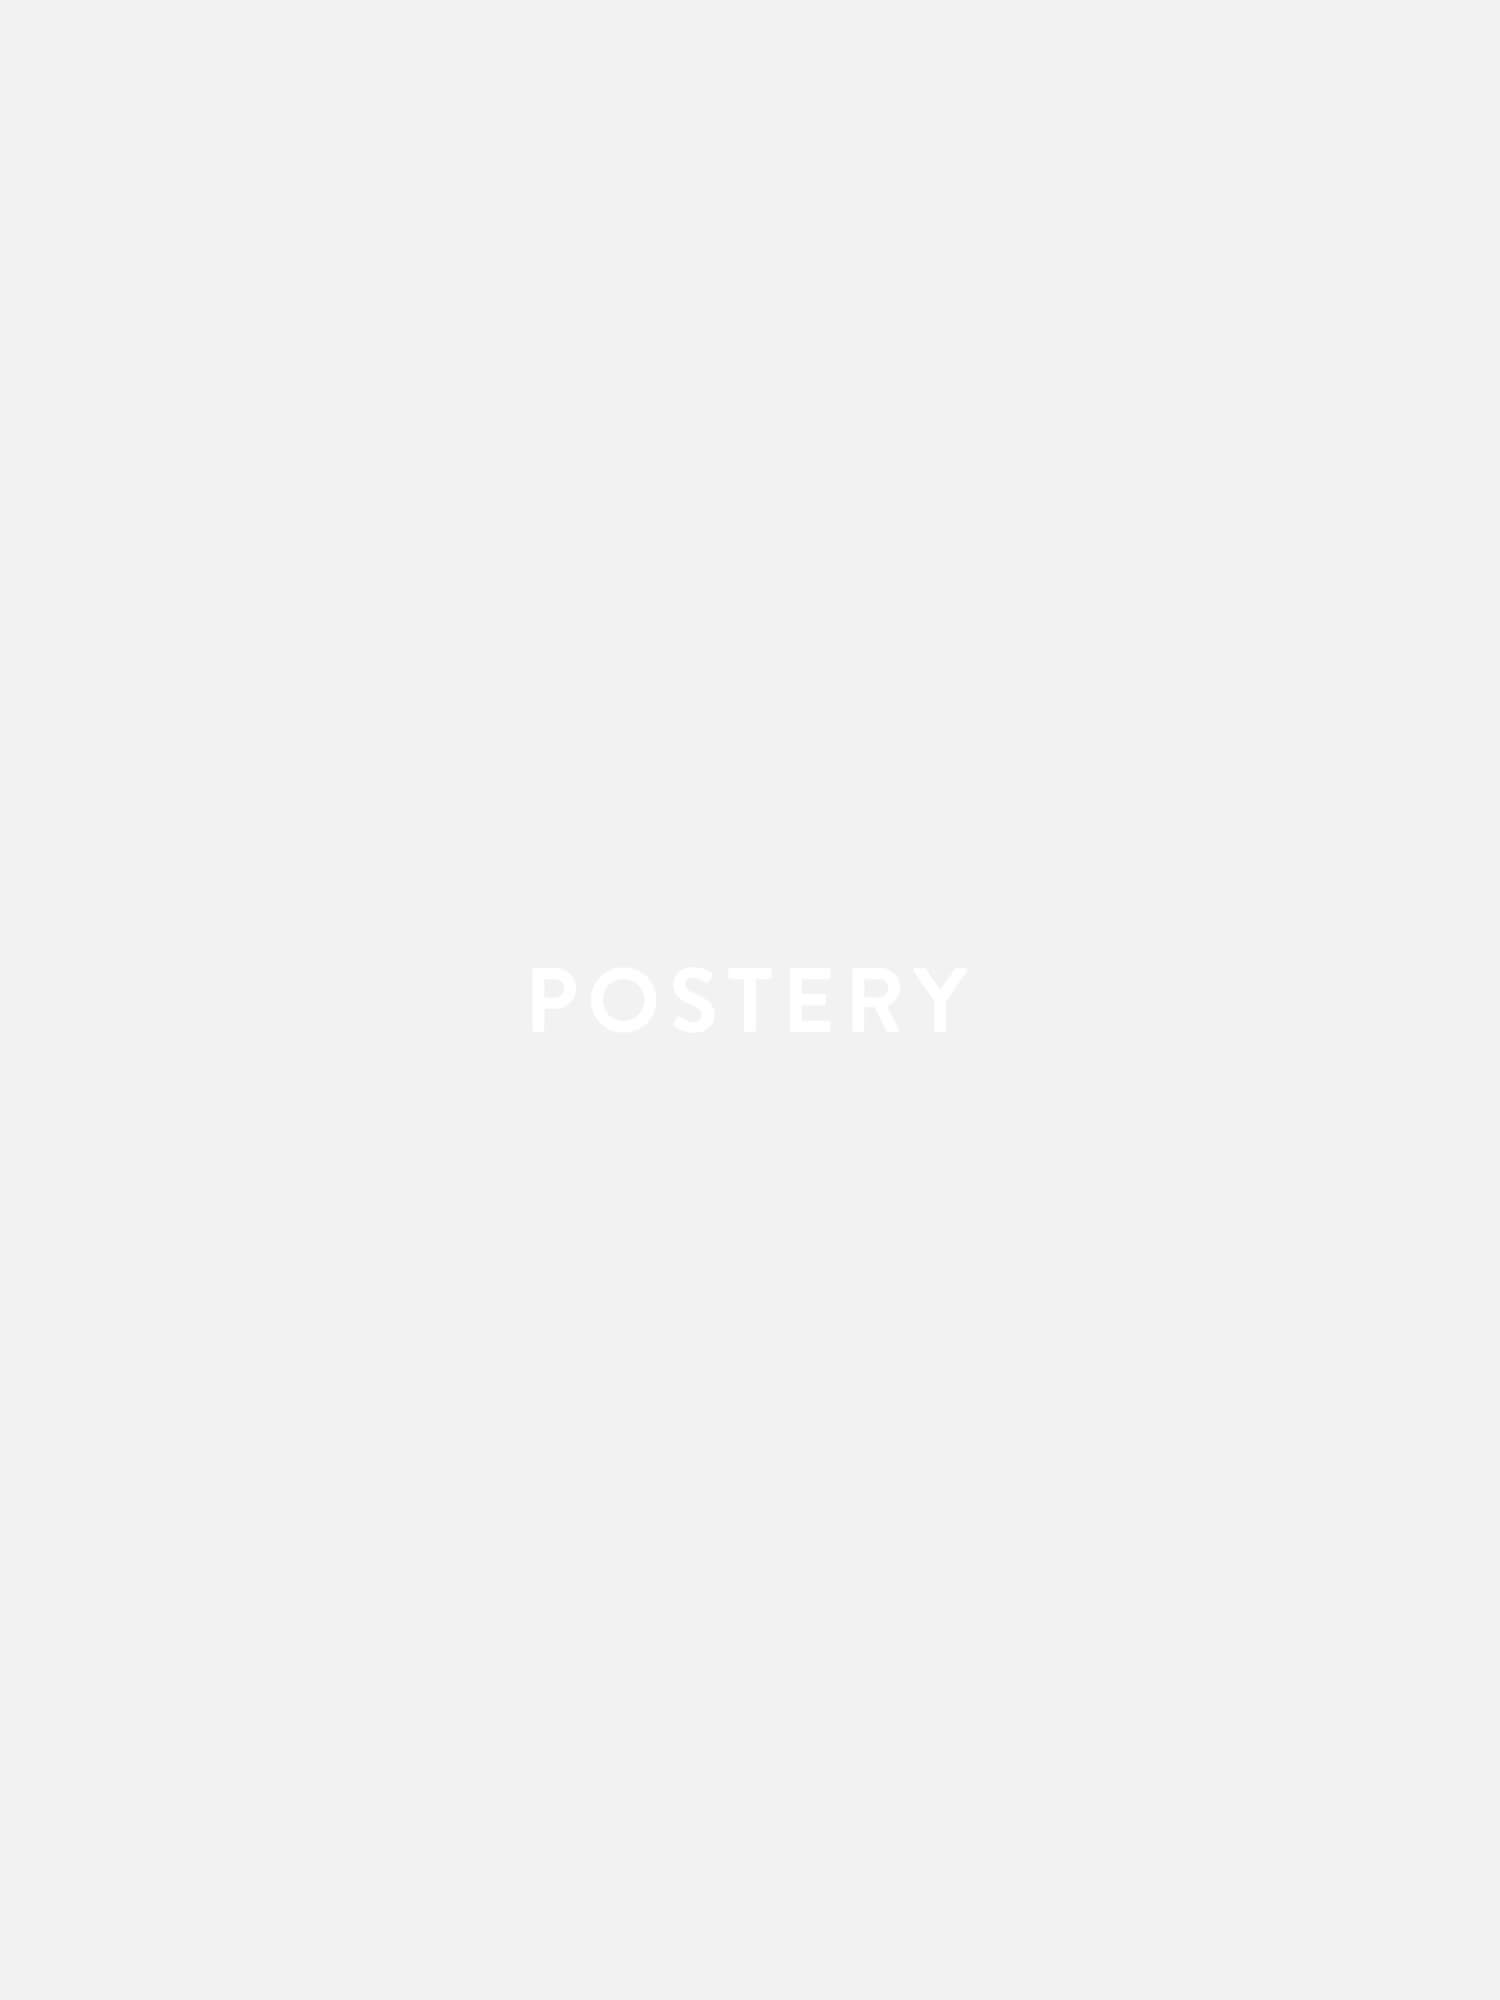 Retro Flower no.2 Poster